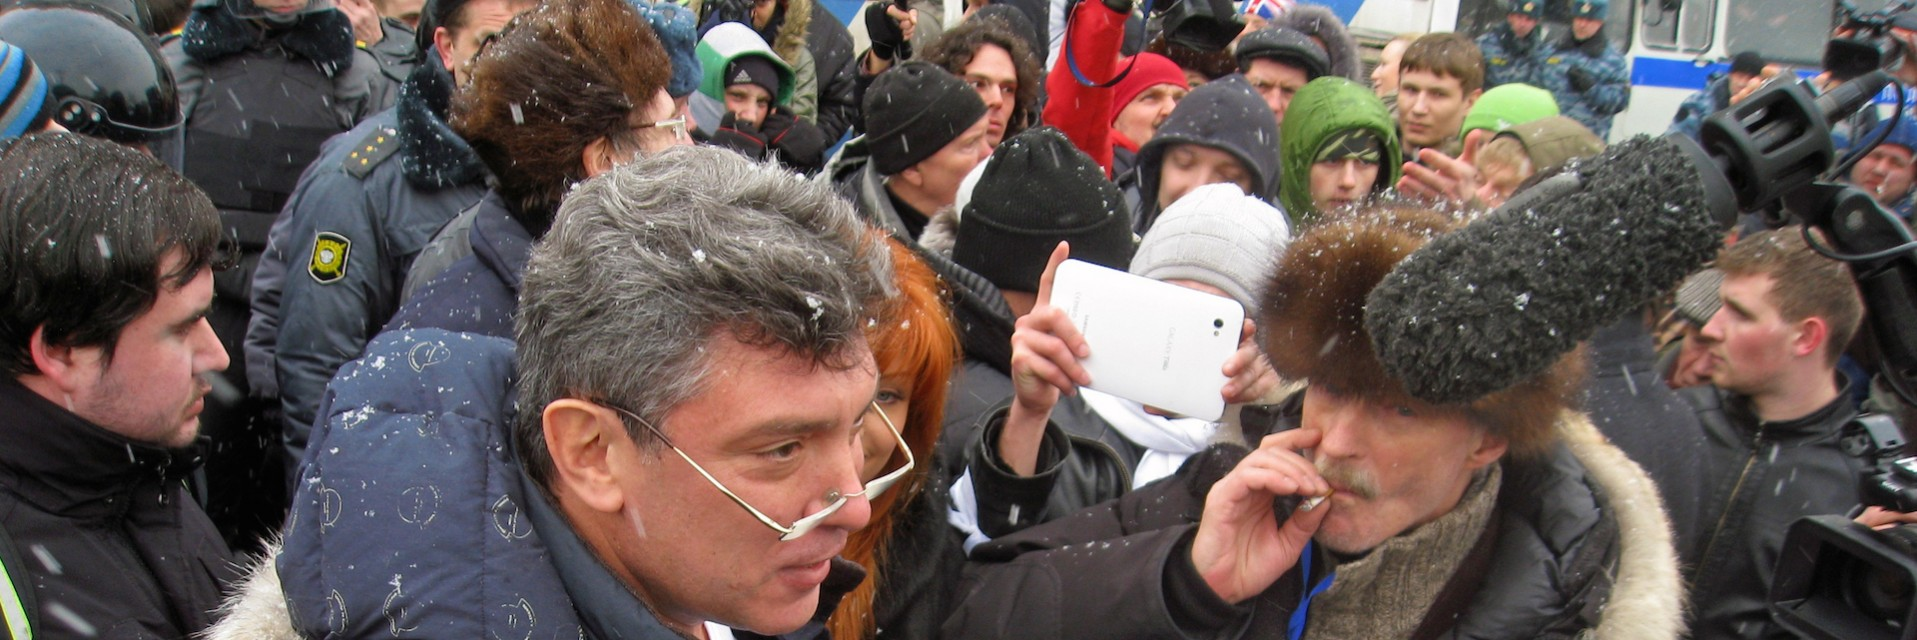 Image result for PHOTOS OF LUCIEN KIN IN RUSSIA FOR NPR